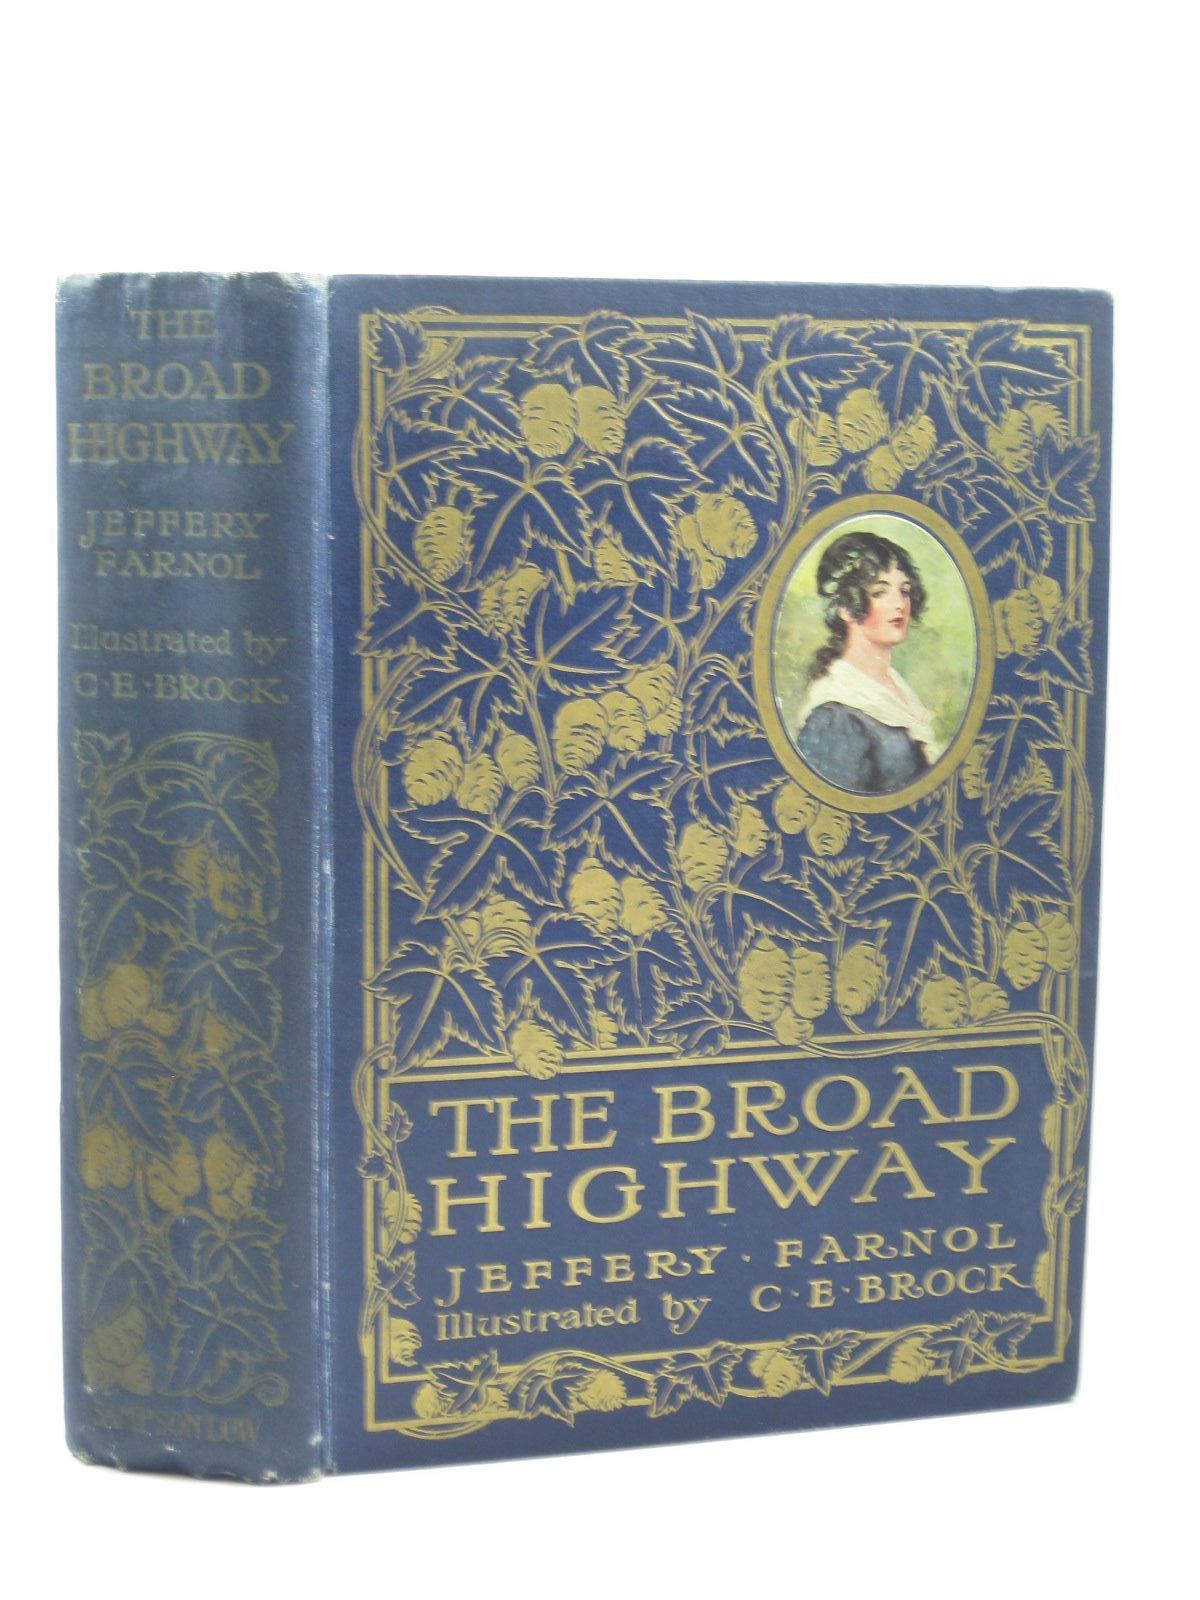 Photo of THE BROAD HIGHWAY written by Farnol, Jeffery illustrated by Brock, C.E. published by Sampson Low, Marston & Co. Ltd. (STOCK CODE: 1502327)  for sale by Stella & Rose's Books